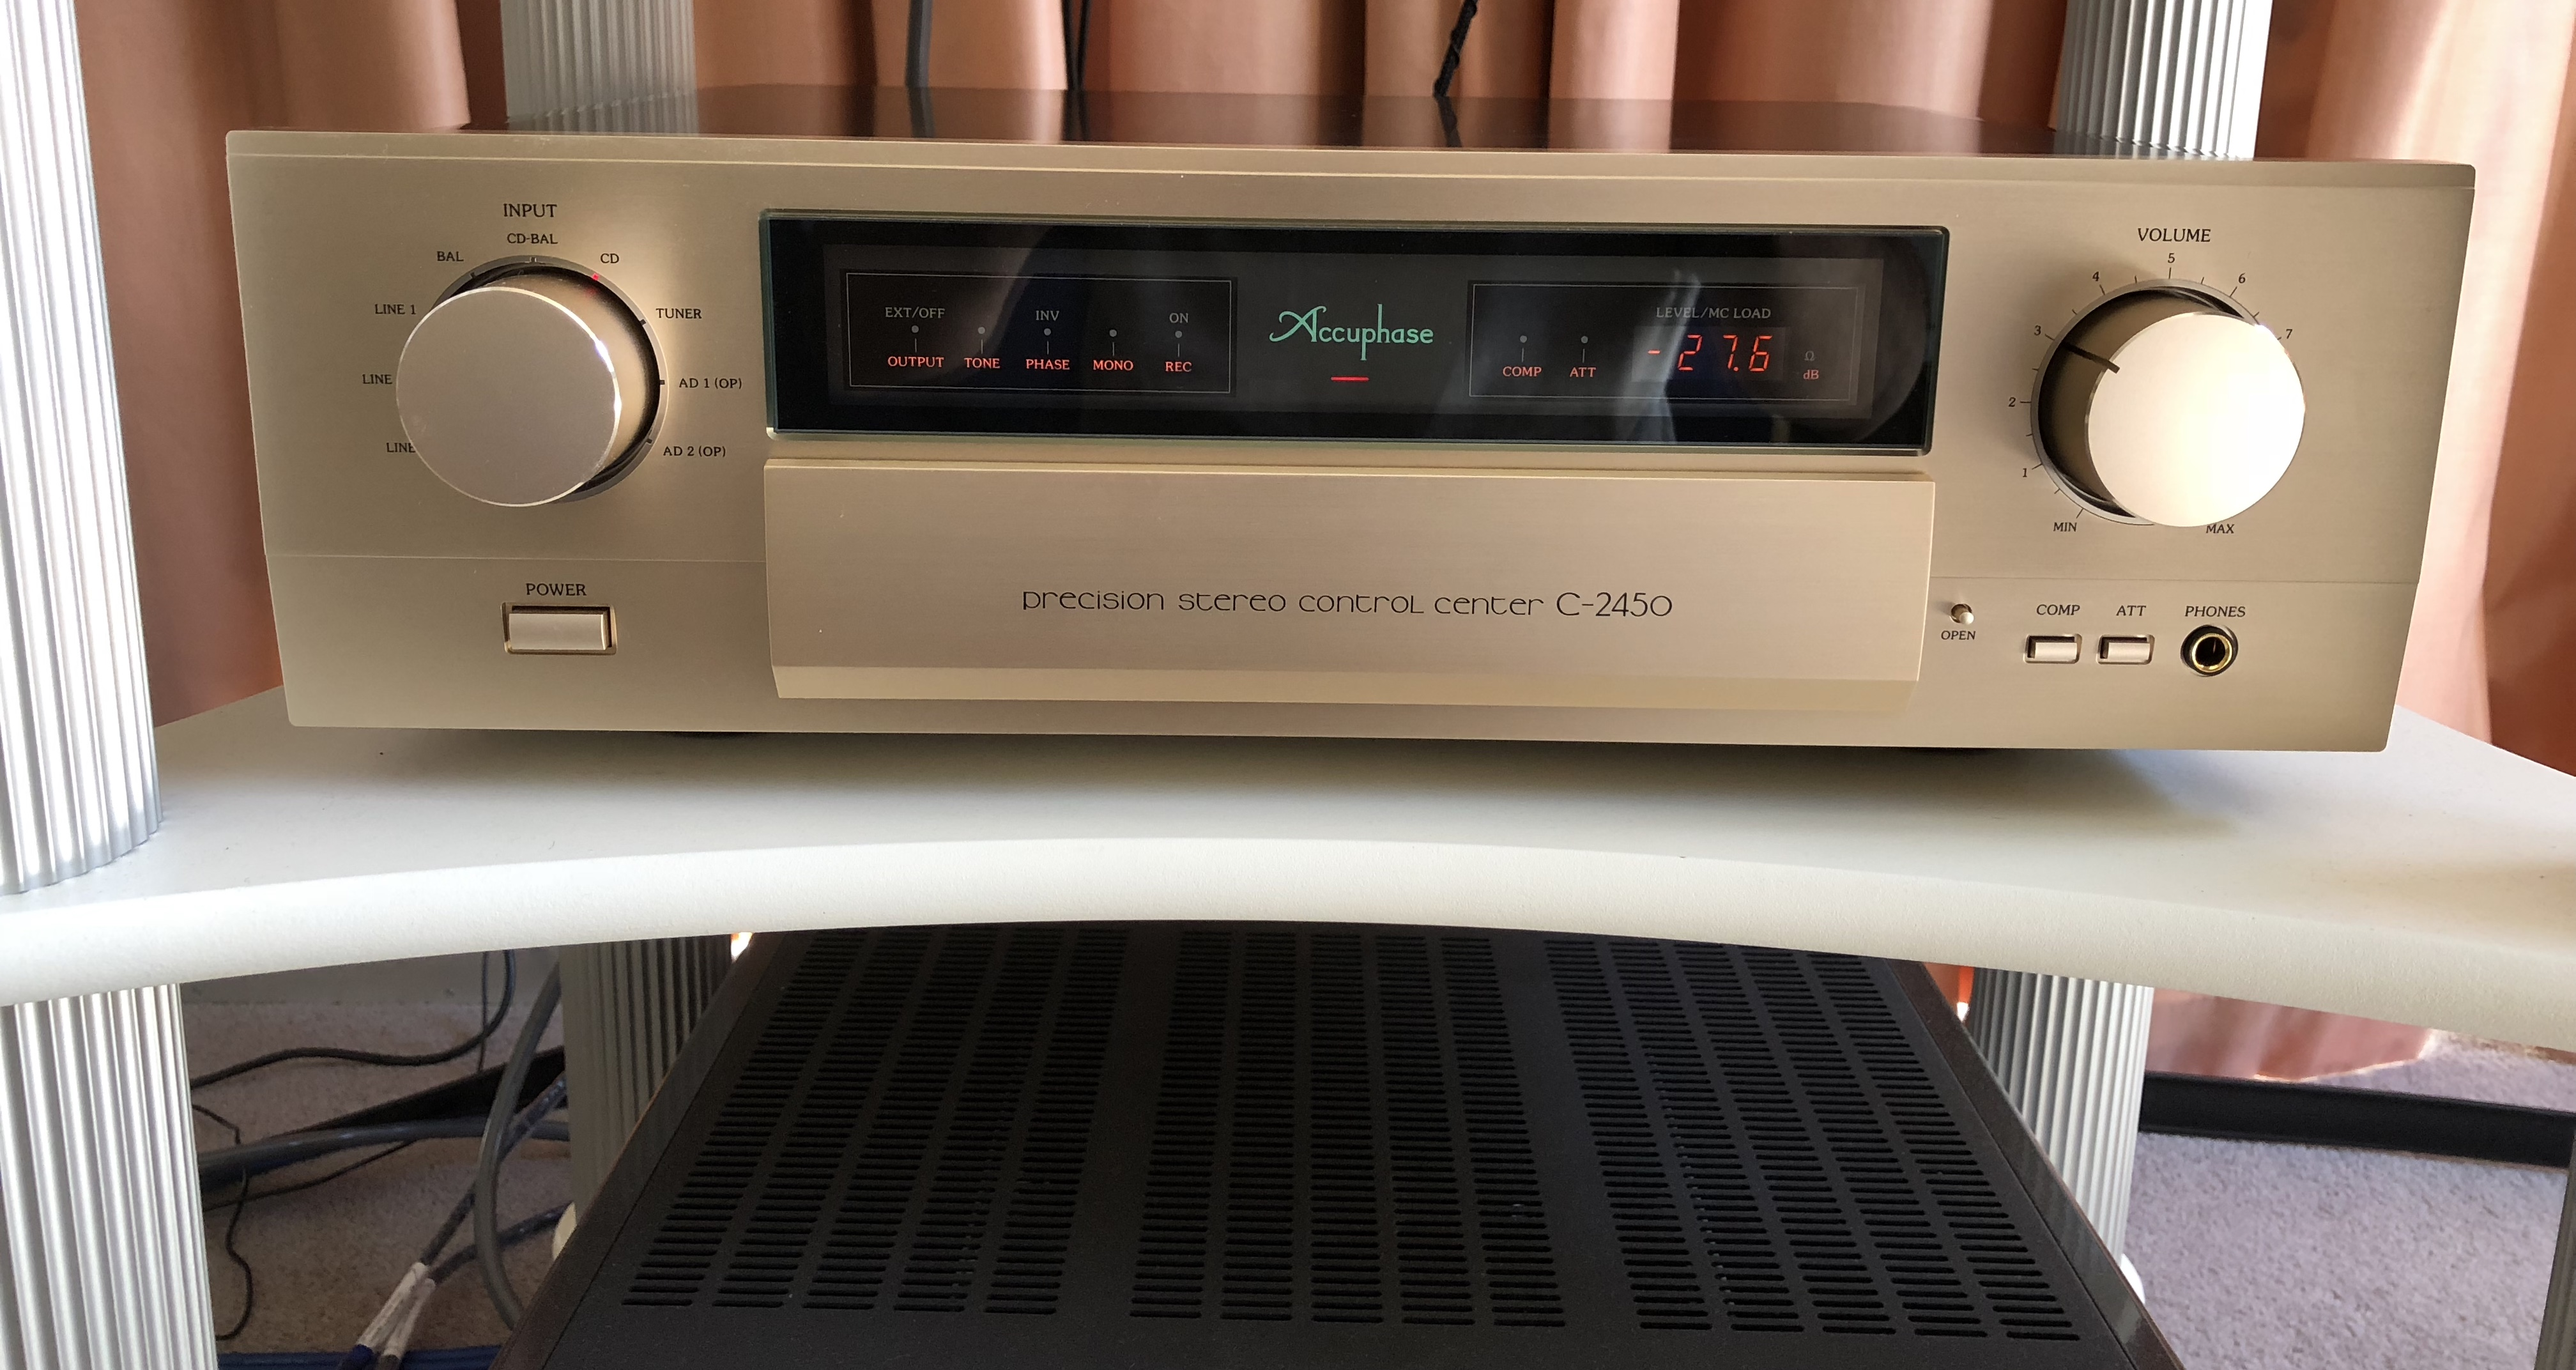 WITHDRAWN OR RELISTED: FS: Accuphase C2450 preamplifier